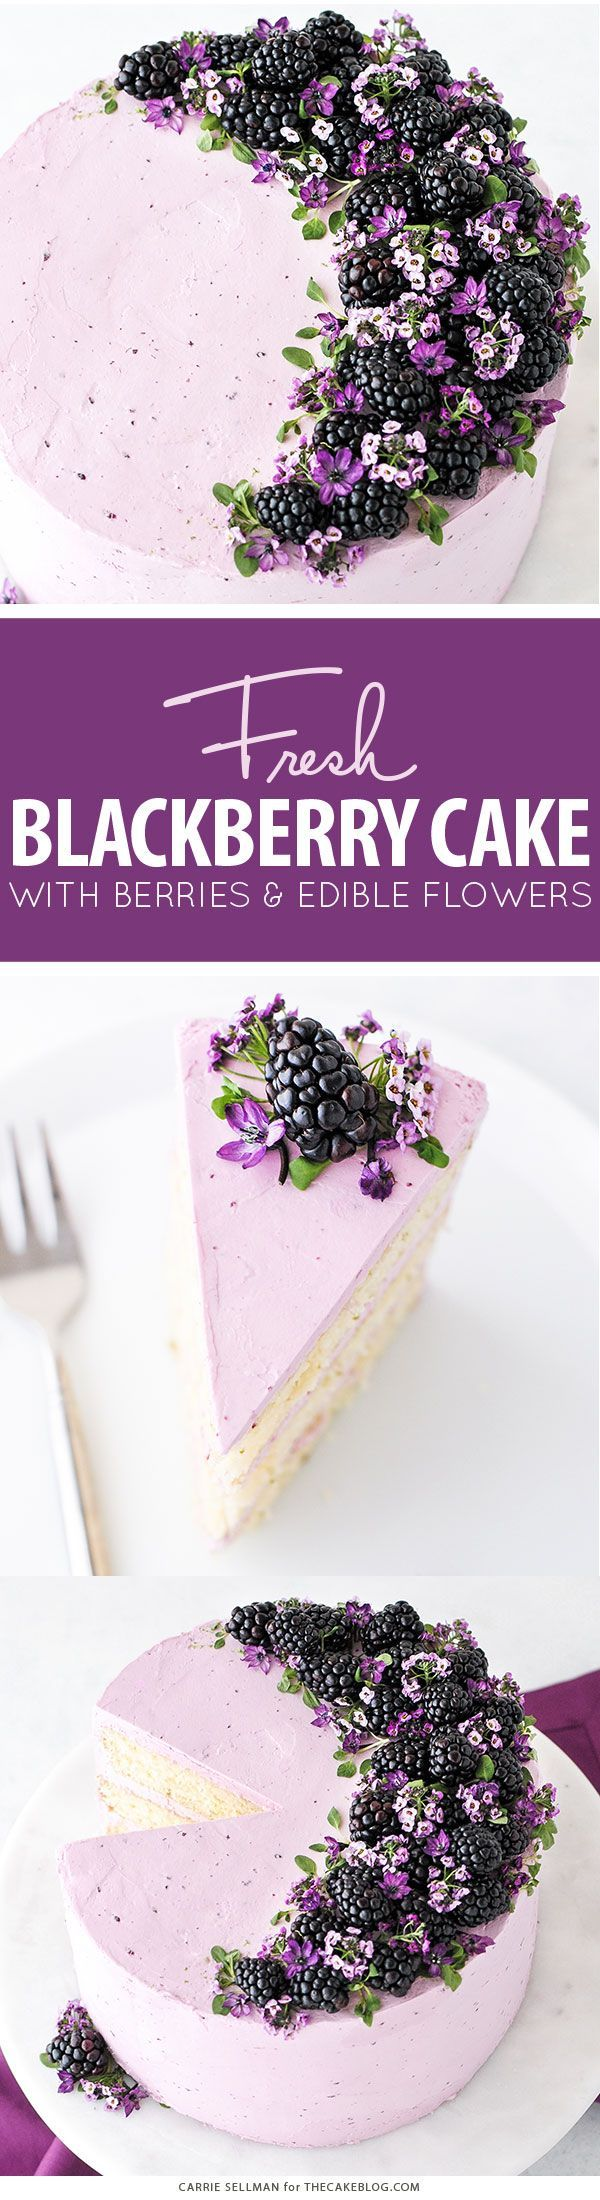 Blackberry Lime Cake - tender cake infused with lime zest, frosted with blackberry buttercream, topped with fresh blackberries and edible flowers | by Carrie Sellman for TheCakeBlog.com - Tap the pin for the most adorable pawtastic fur baby apparel! You'll love the dog clothes and cat clothes! <3